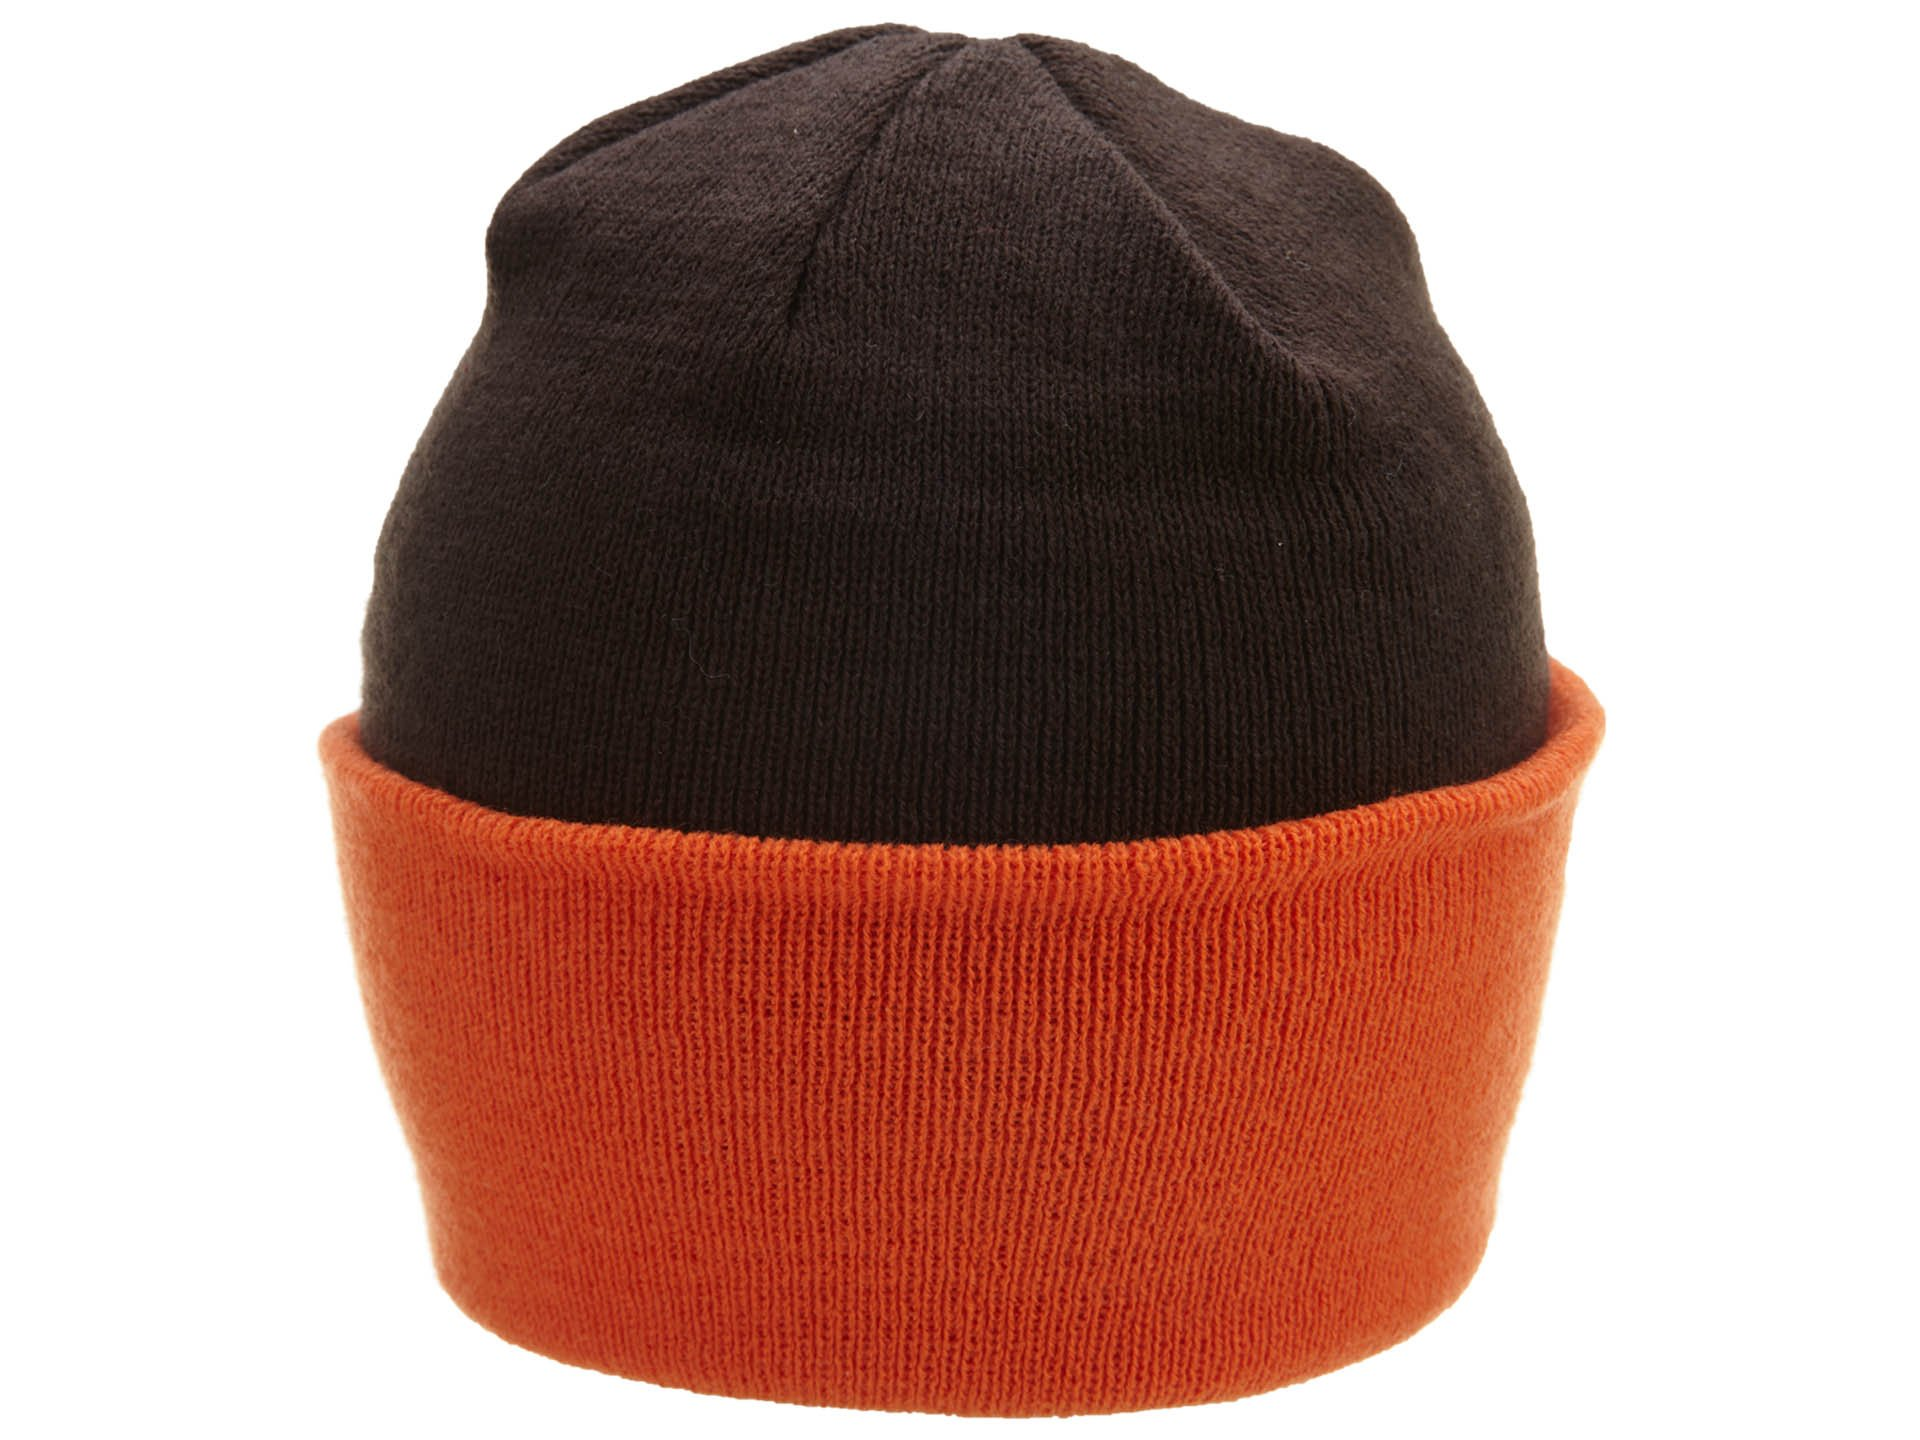 NFL End Zone Cuffed Knit Hat - K010Z, Cleveland Browns, One Size Fits All by Reebok (Image #2)